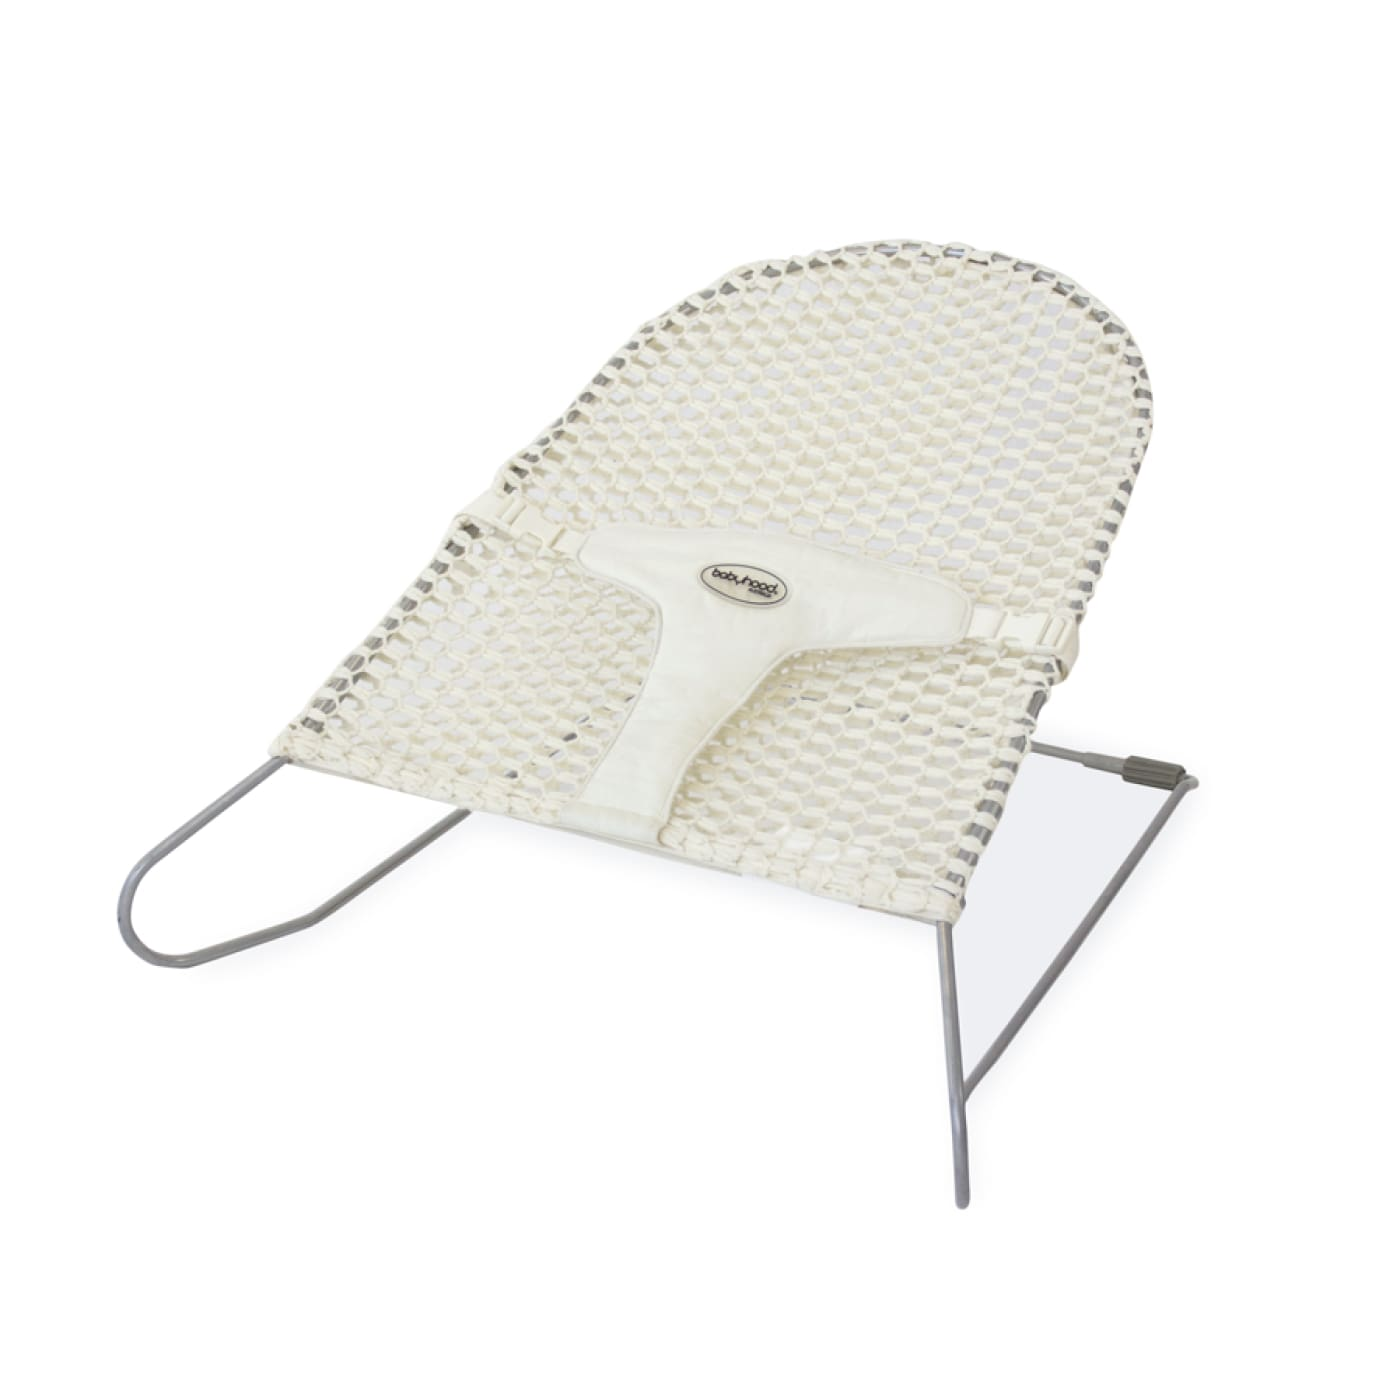 Babyhood Mesh Bouncinette - White - TOYS & PLAY - ROCKERS/BOUNCERS